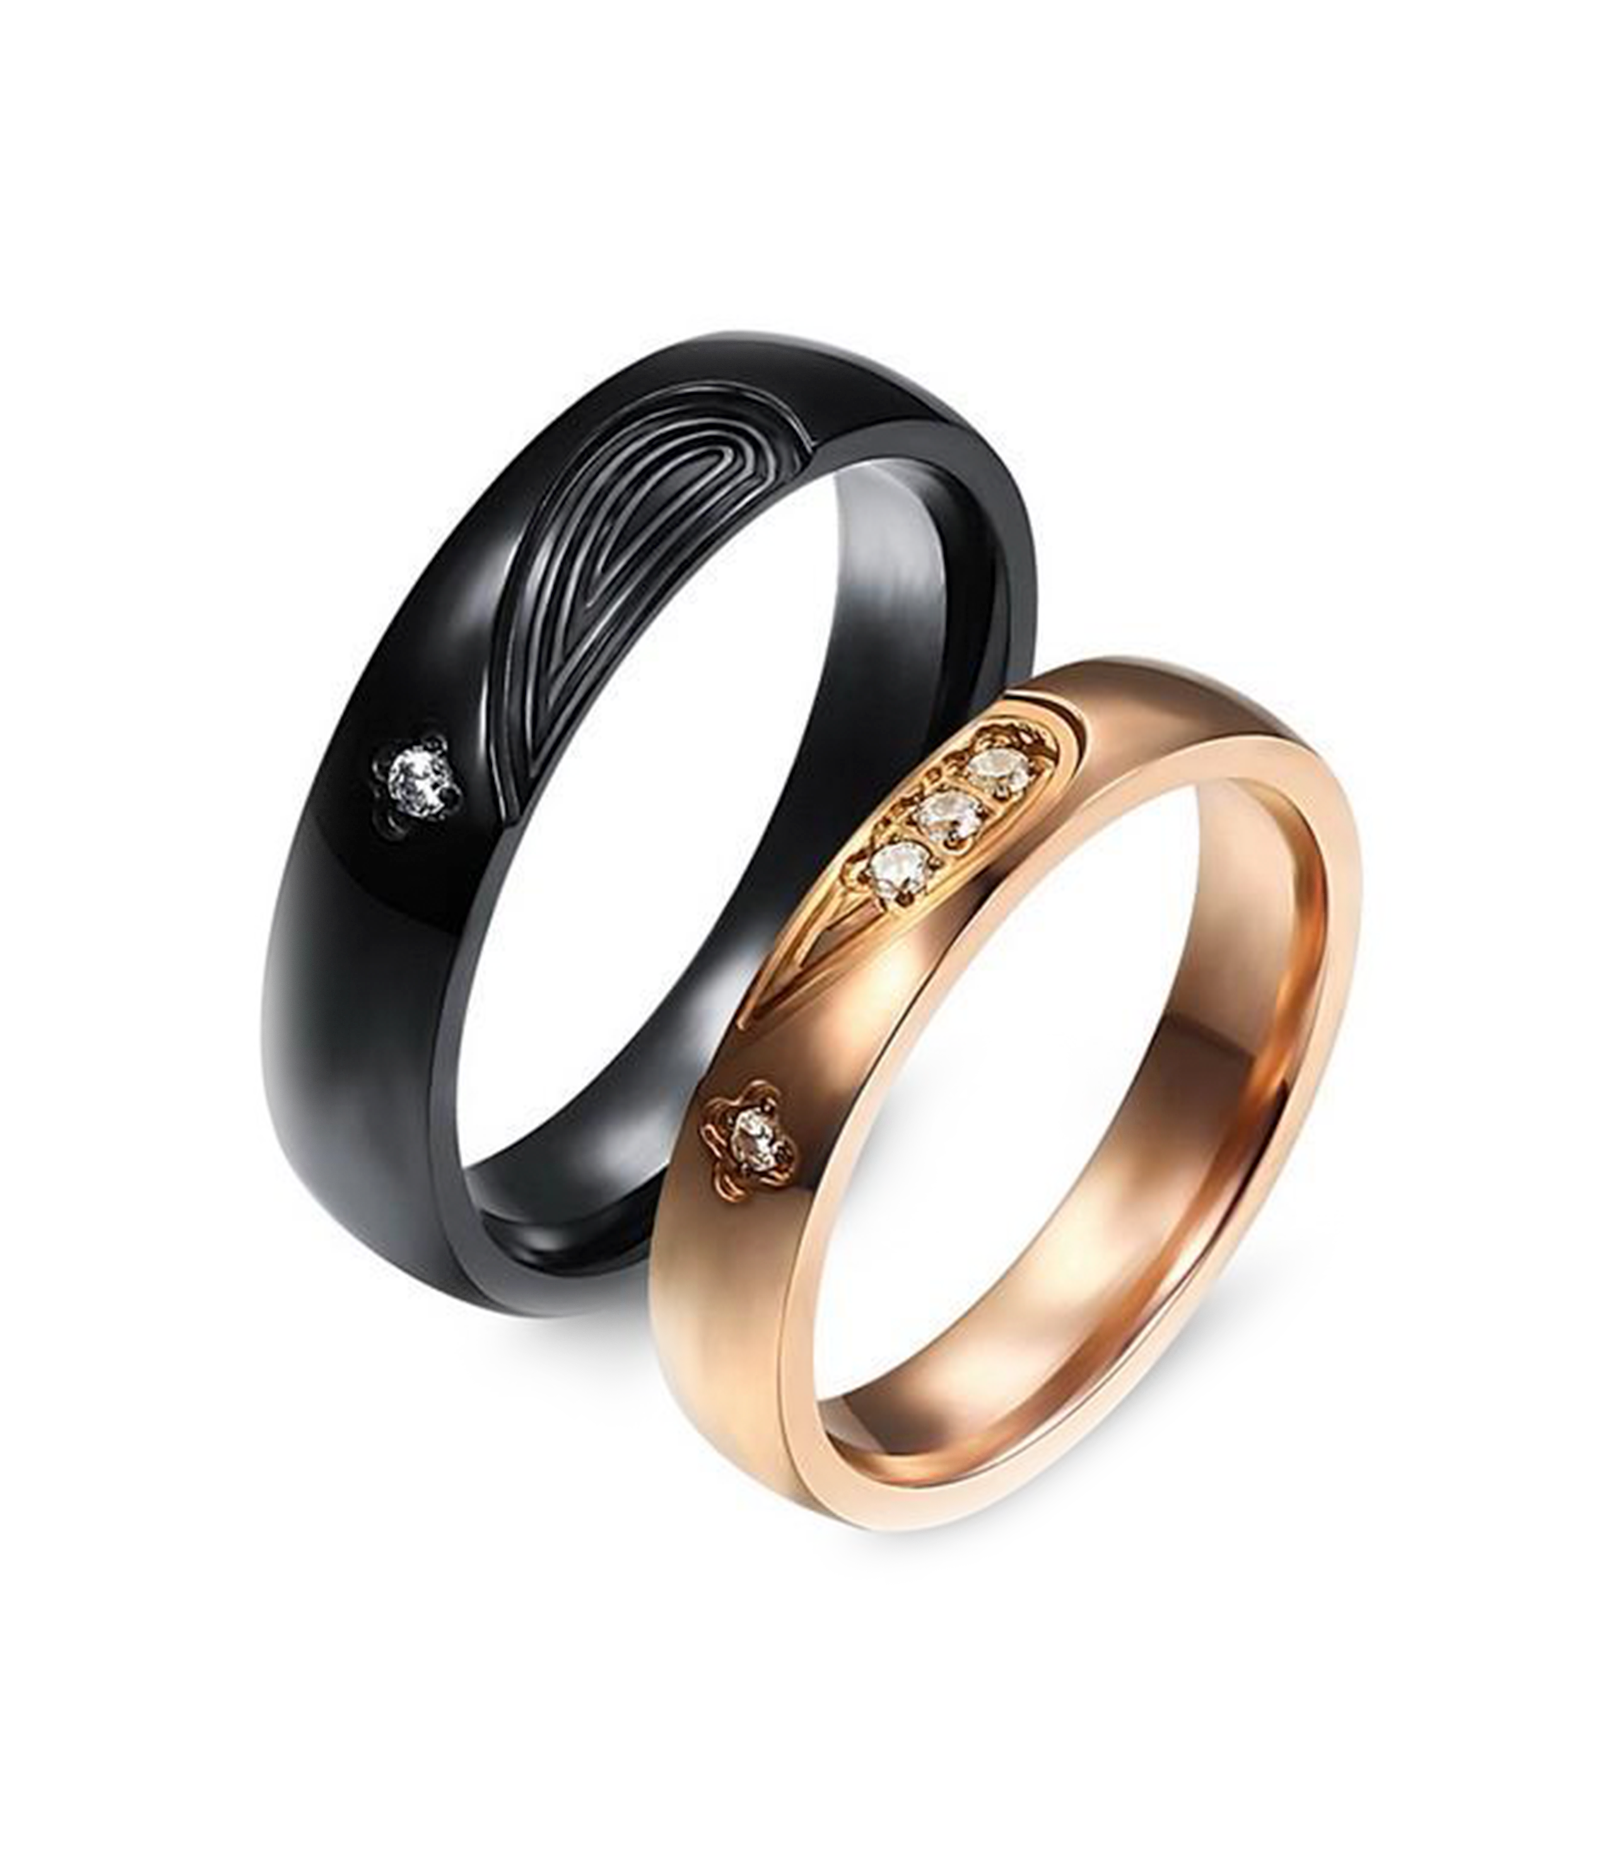 Dual Hearts in Black and Rose Gold Plated Titanium Wedding Ring